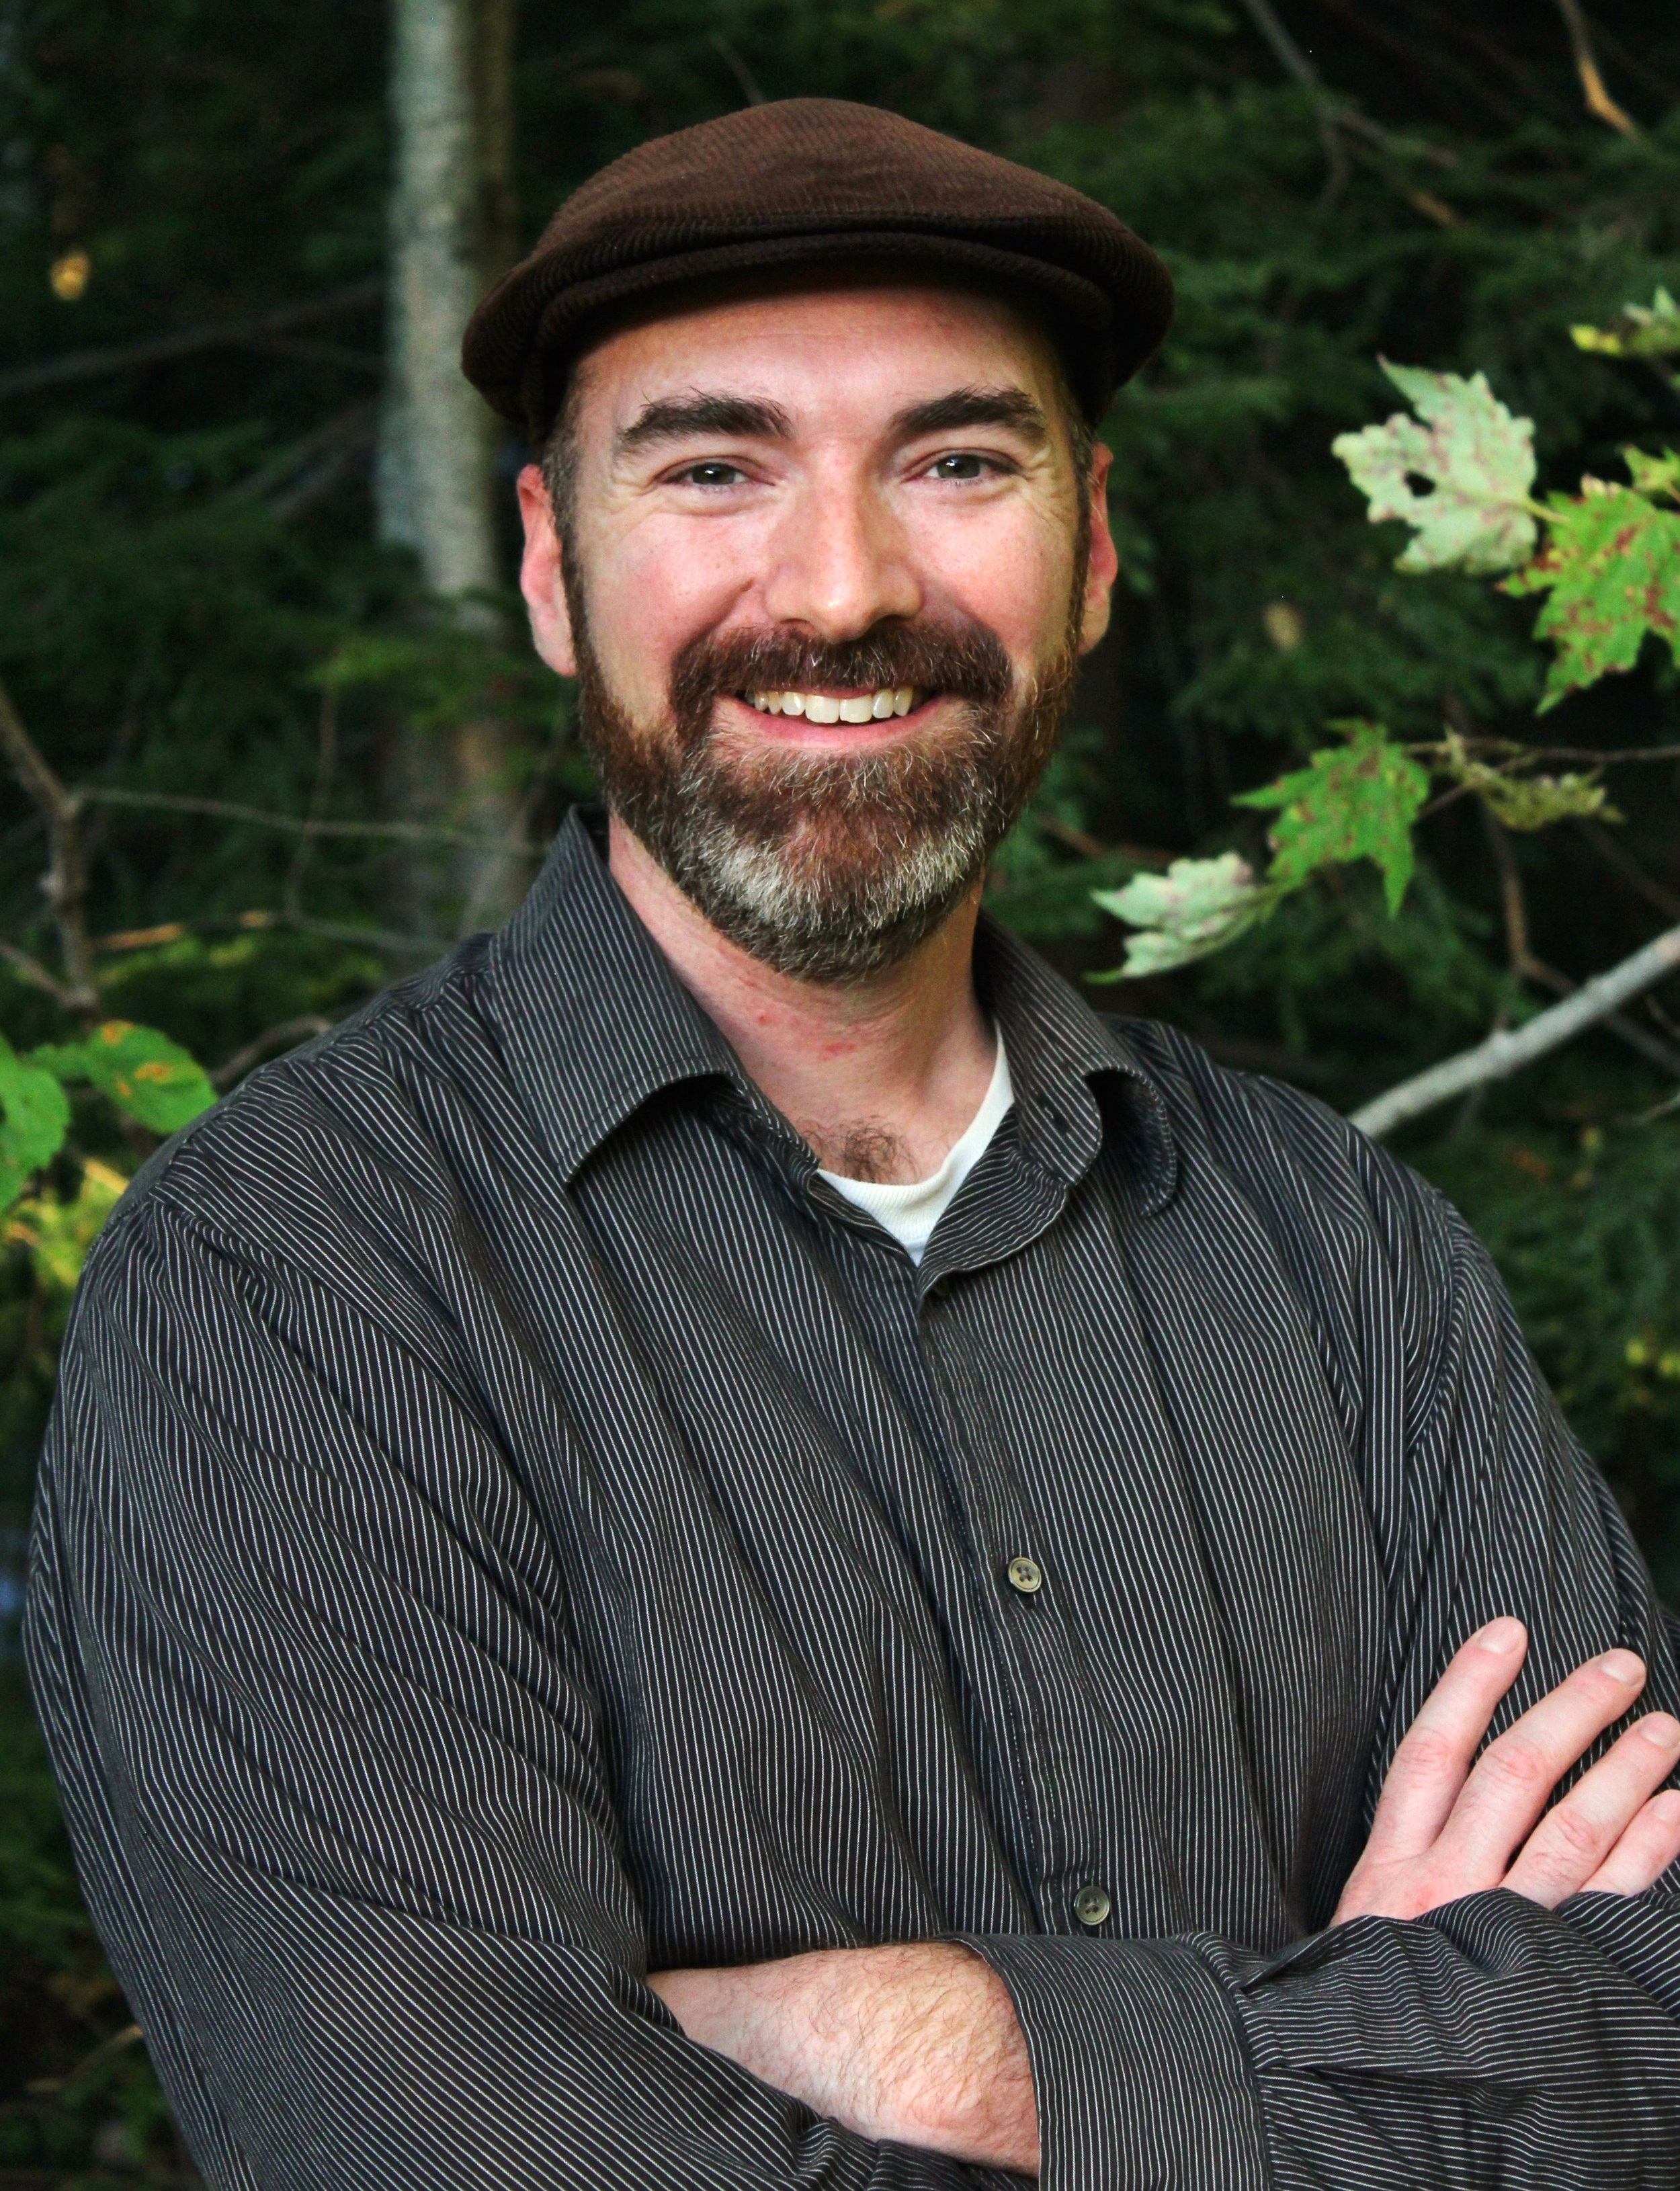 "Brian webb - Brian has served as the Director of Climate Caretakers since our founding 2015.  In this role, he has served as a catalyst—helping to spark numerous climate-related projects within the creation care community.For his ""day job,"" Brian works as the Director of the Center for Sustainability at Houghton College in Houghton, NY. Brian holds a Master of Science in Experiential Education from Minnesota State University and a Master of Liberal Arts in Sustainability and Environmental Management from Harvard Extension School. In his spare time Brian enjoys birdwatching, taking road trips, hiking, and highpointing—or climbing to the highest point in all 50 U.S. states."